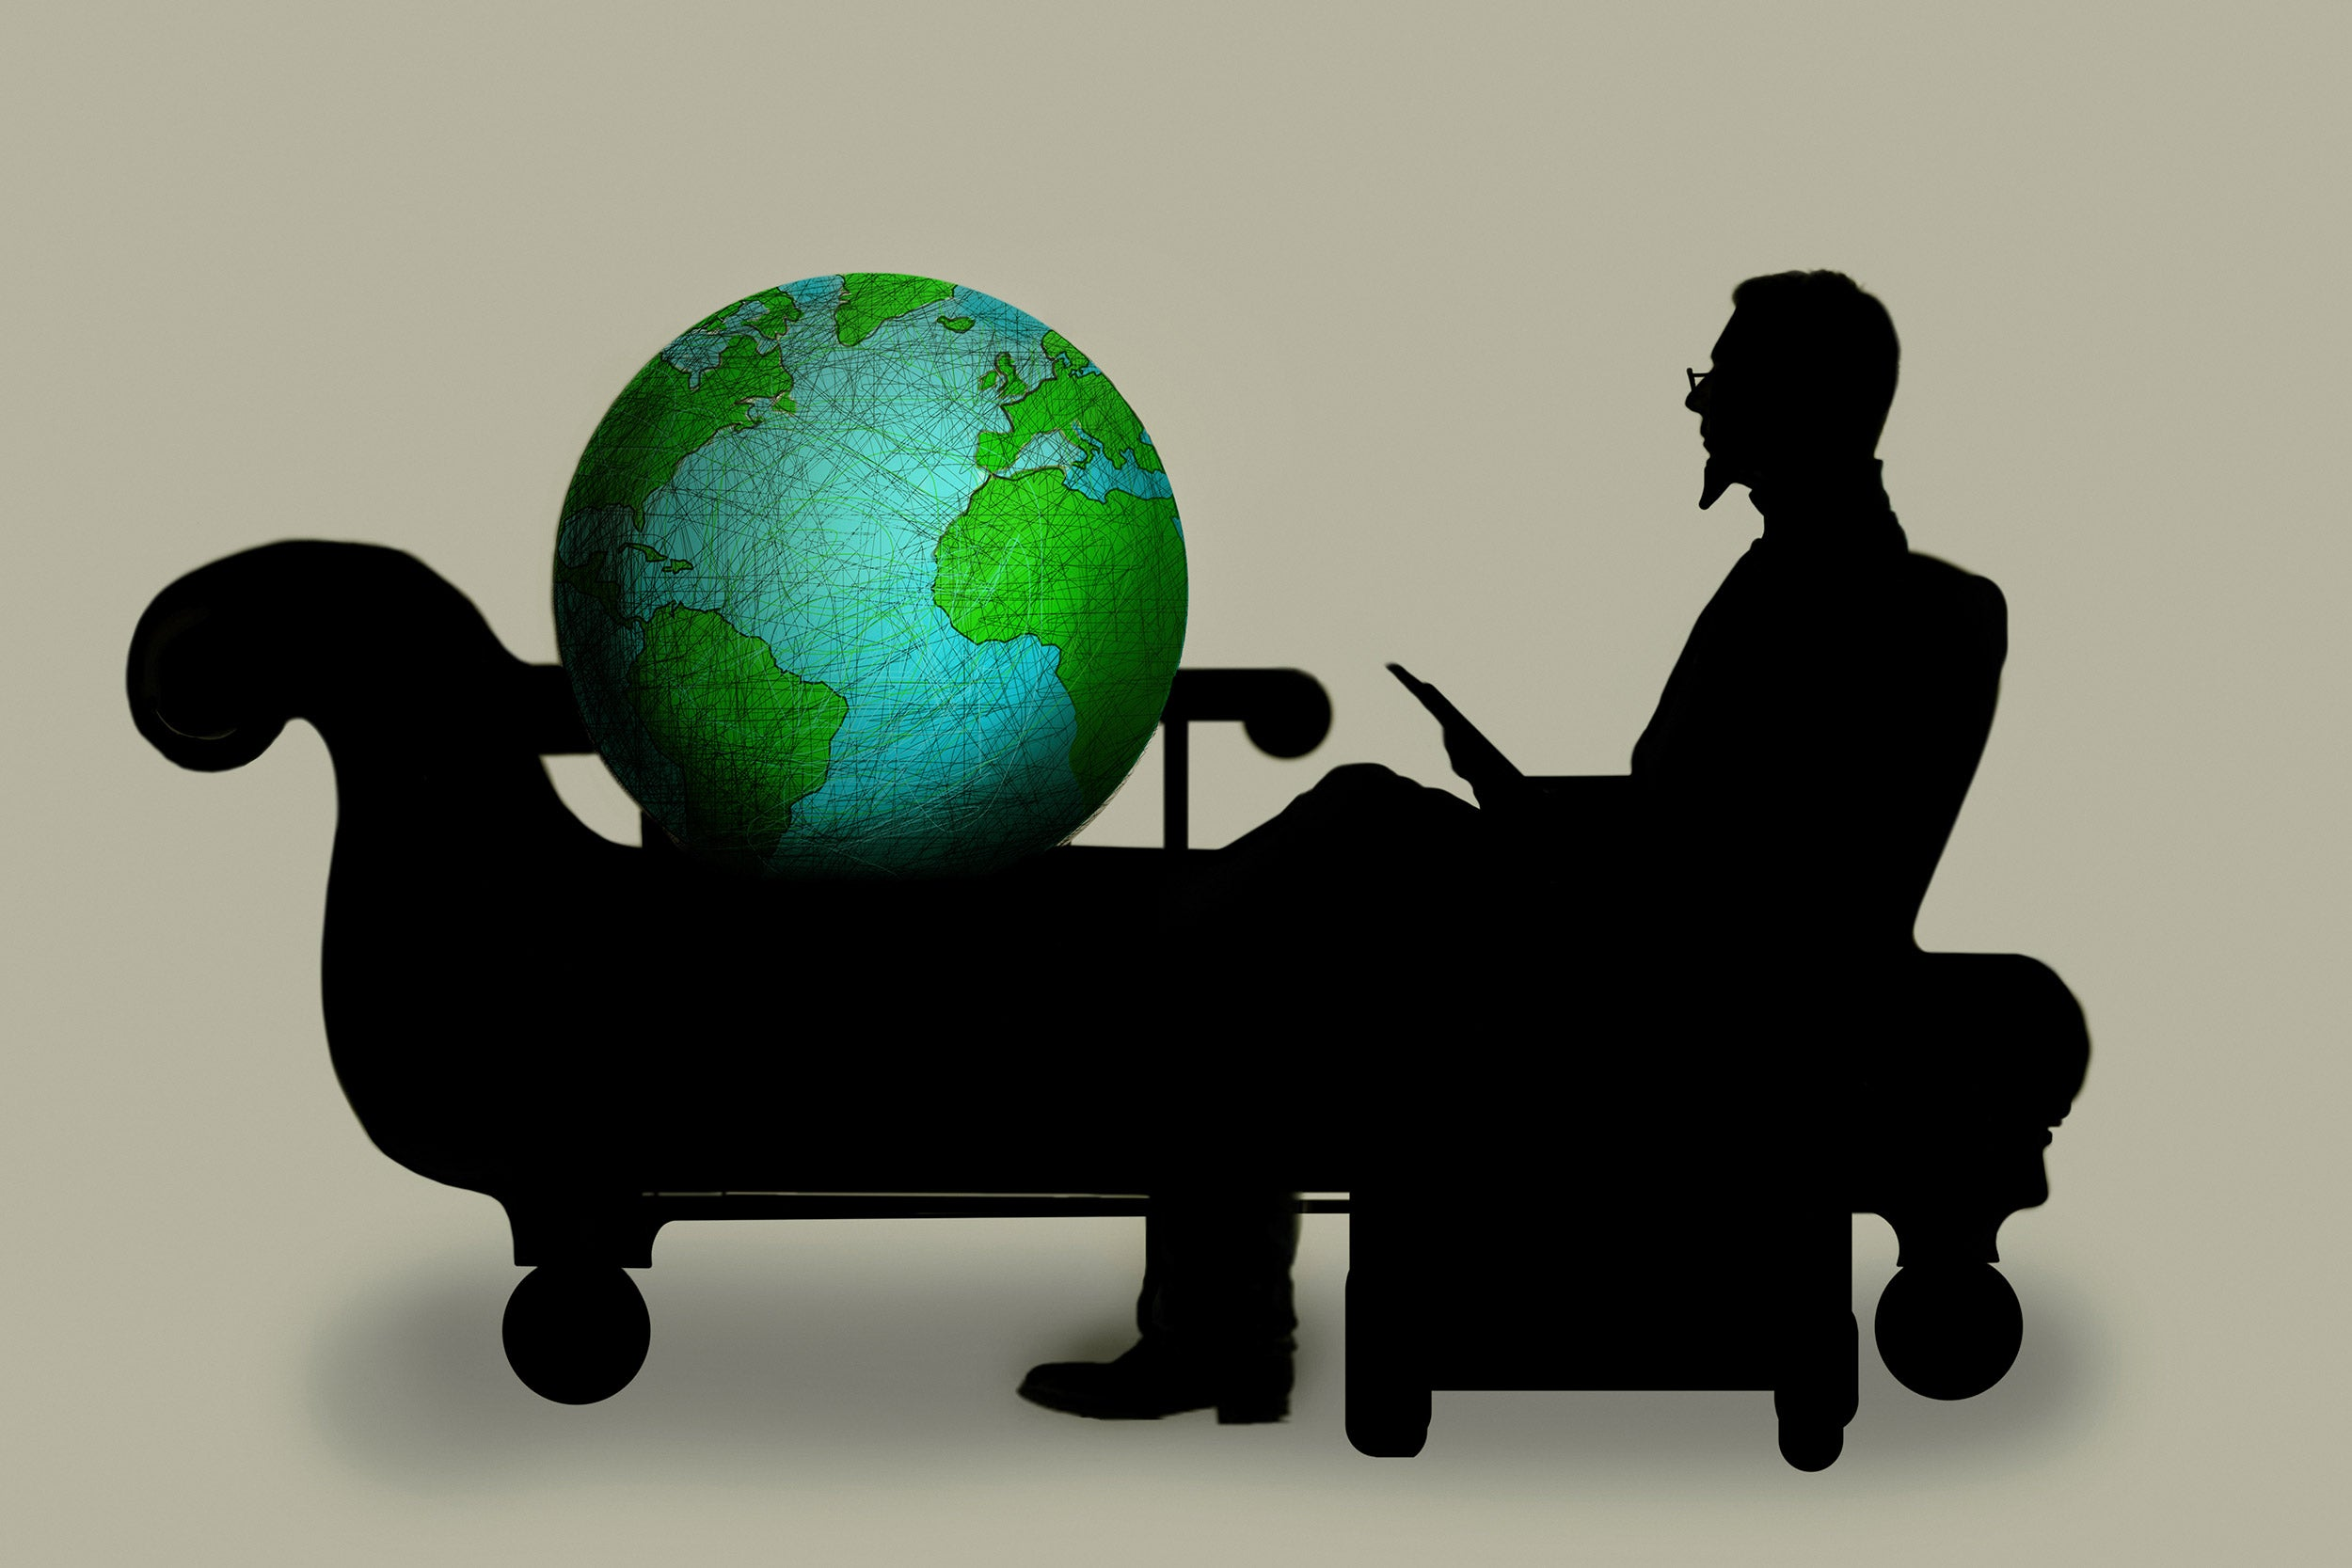 Earth on psychiatrist's couch.